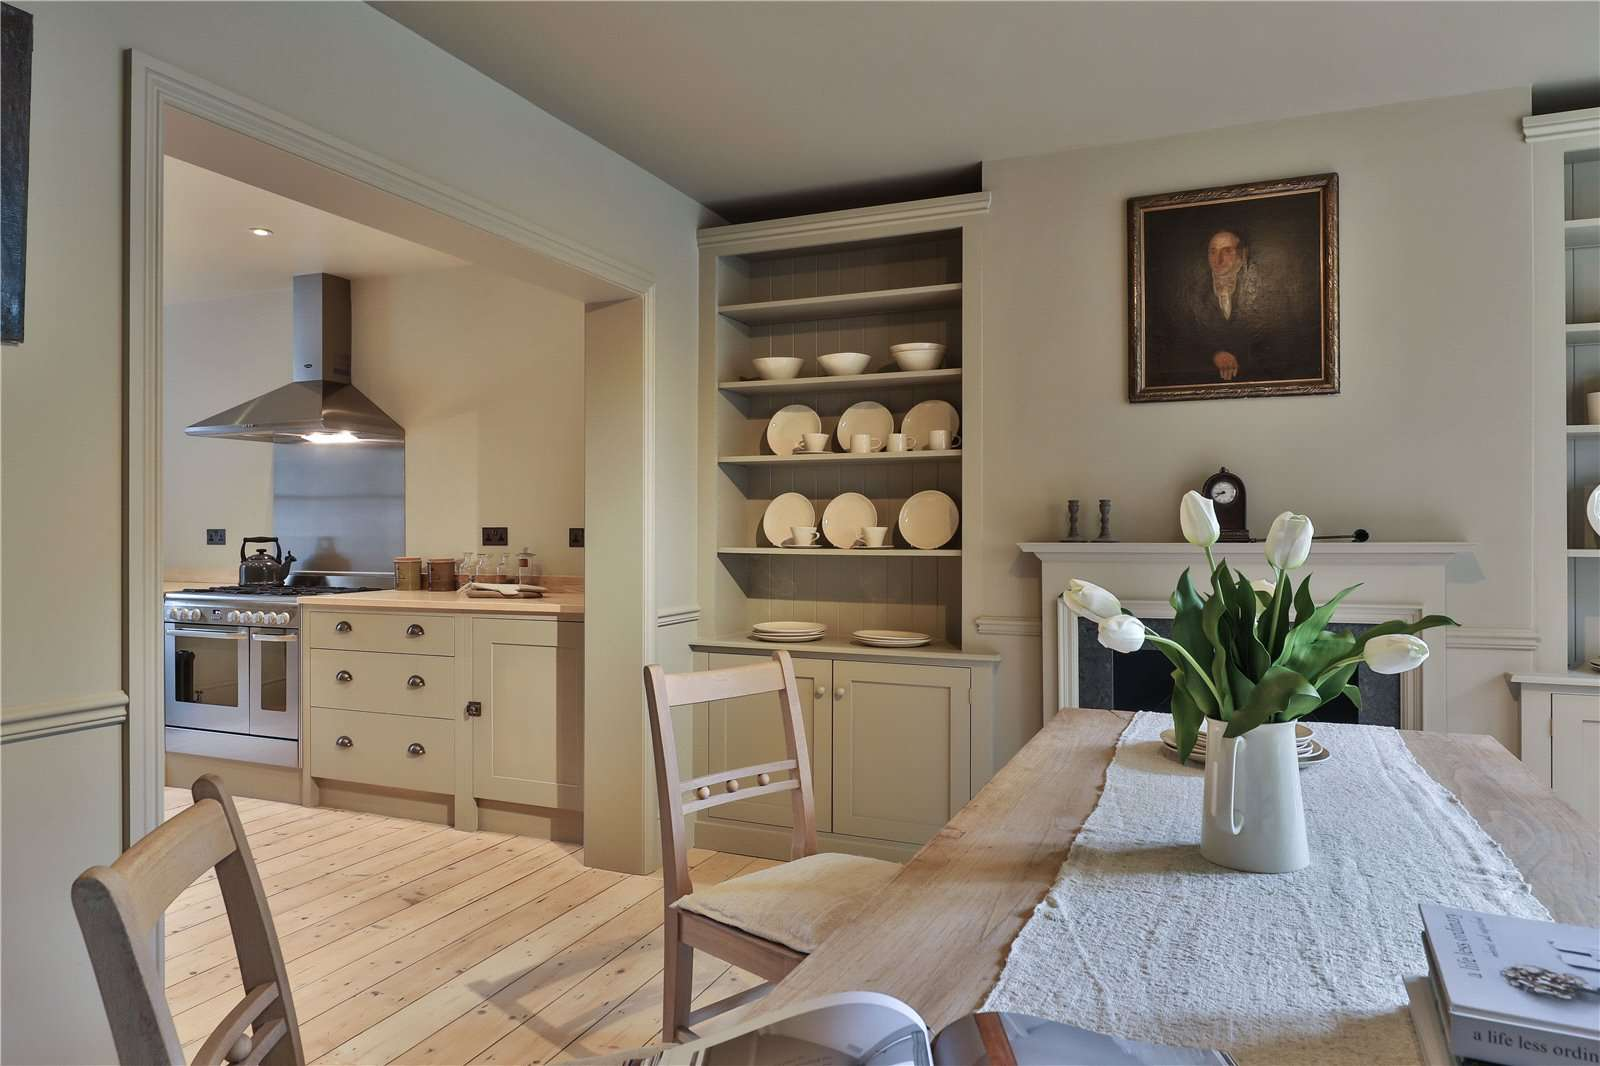 An elegantly-proportioned Victorian house on Woodstock Road in Oxford - Image Gallery 08 - Kitchen